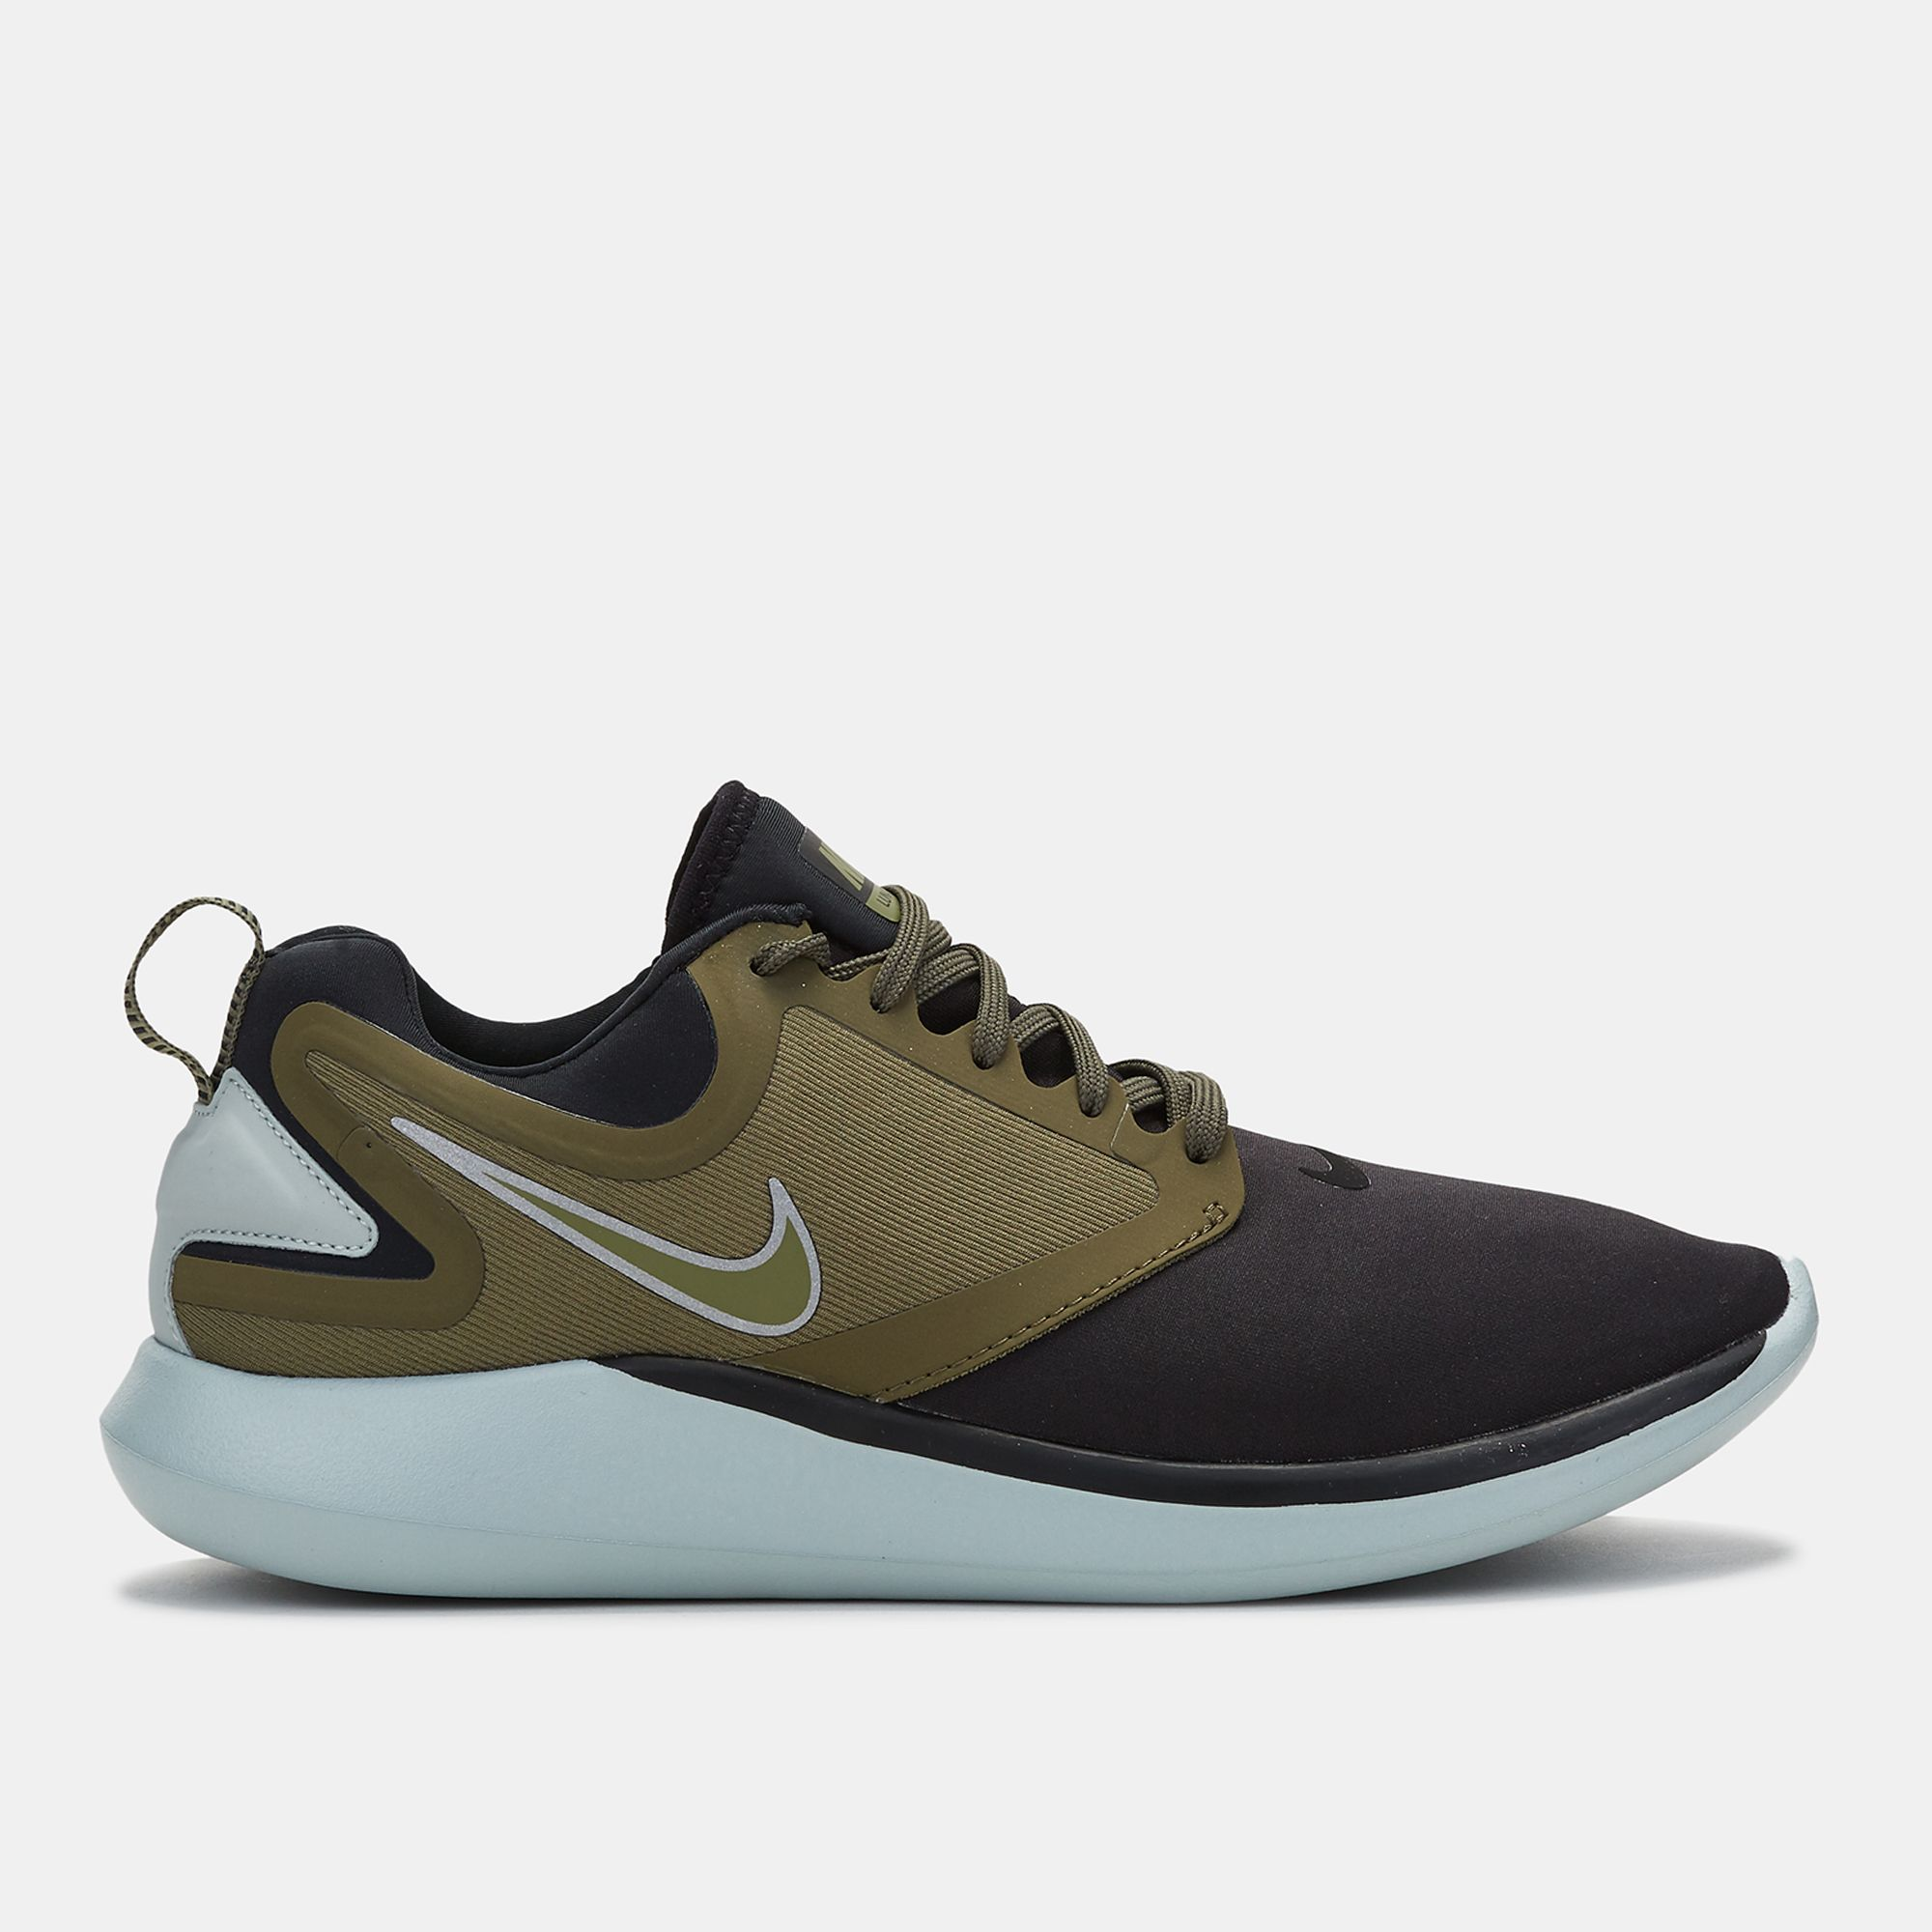 f6ae7b2a5def Shop Black Nike LunarSolo Running Shoe for Mens by Nike - 0